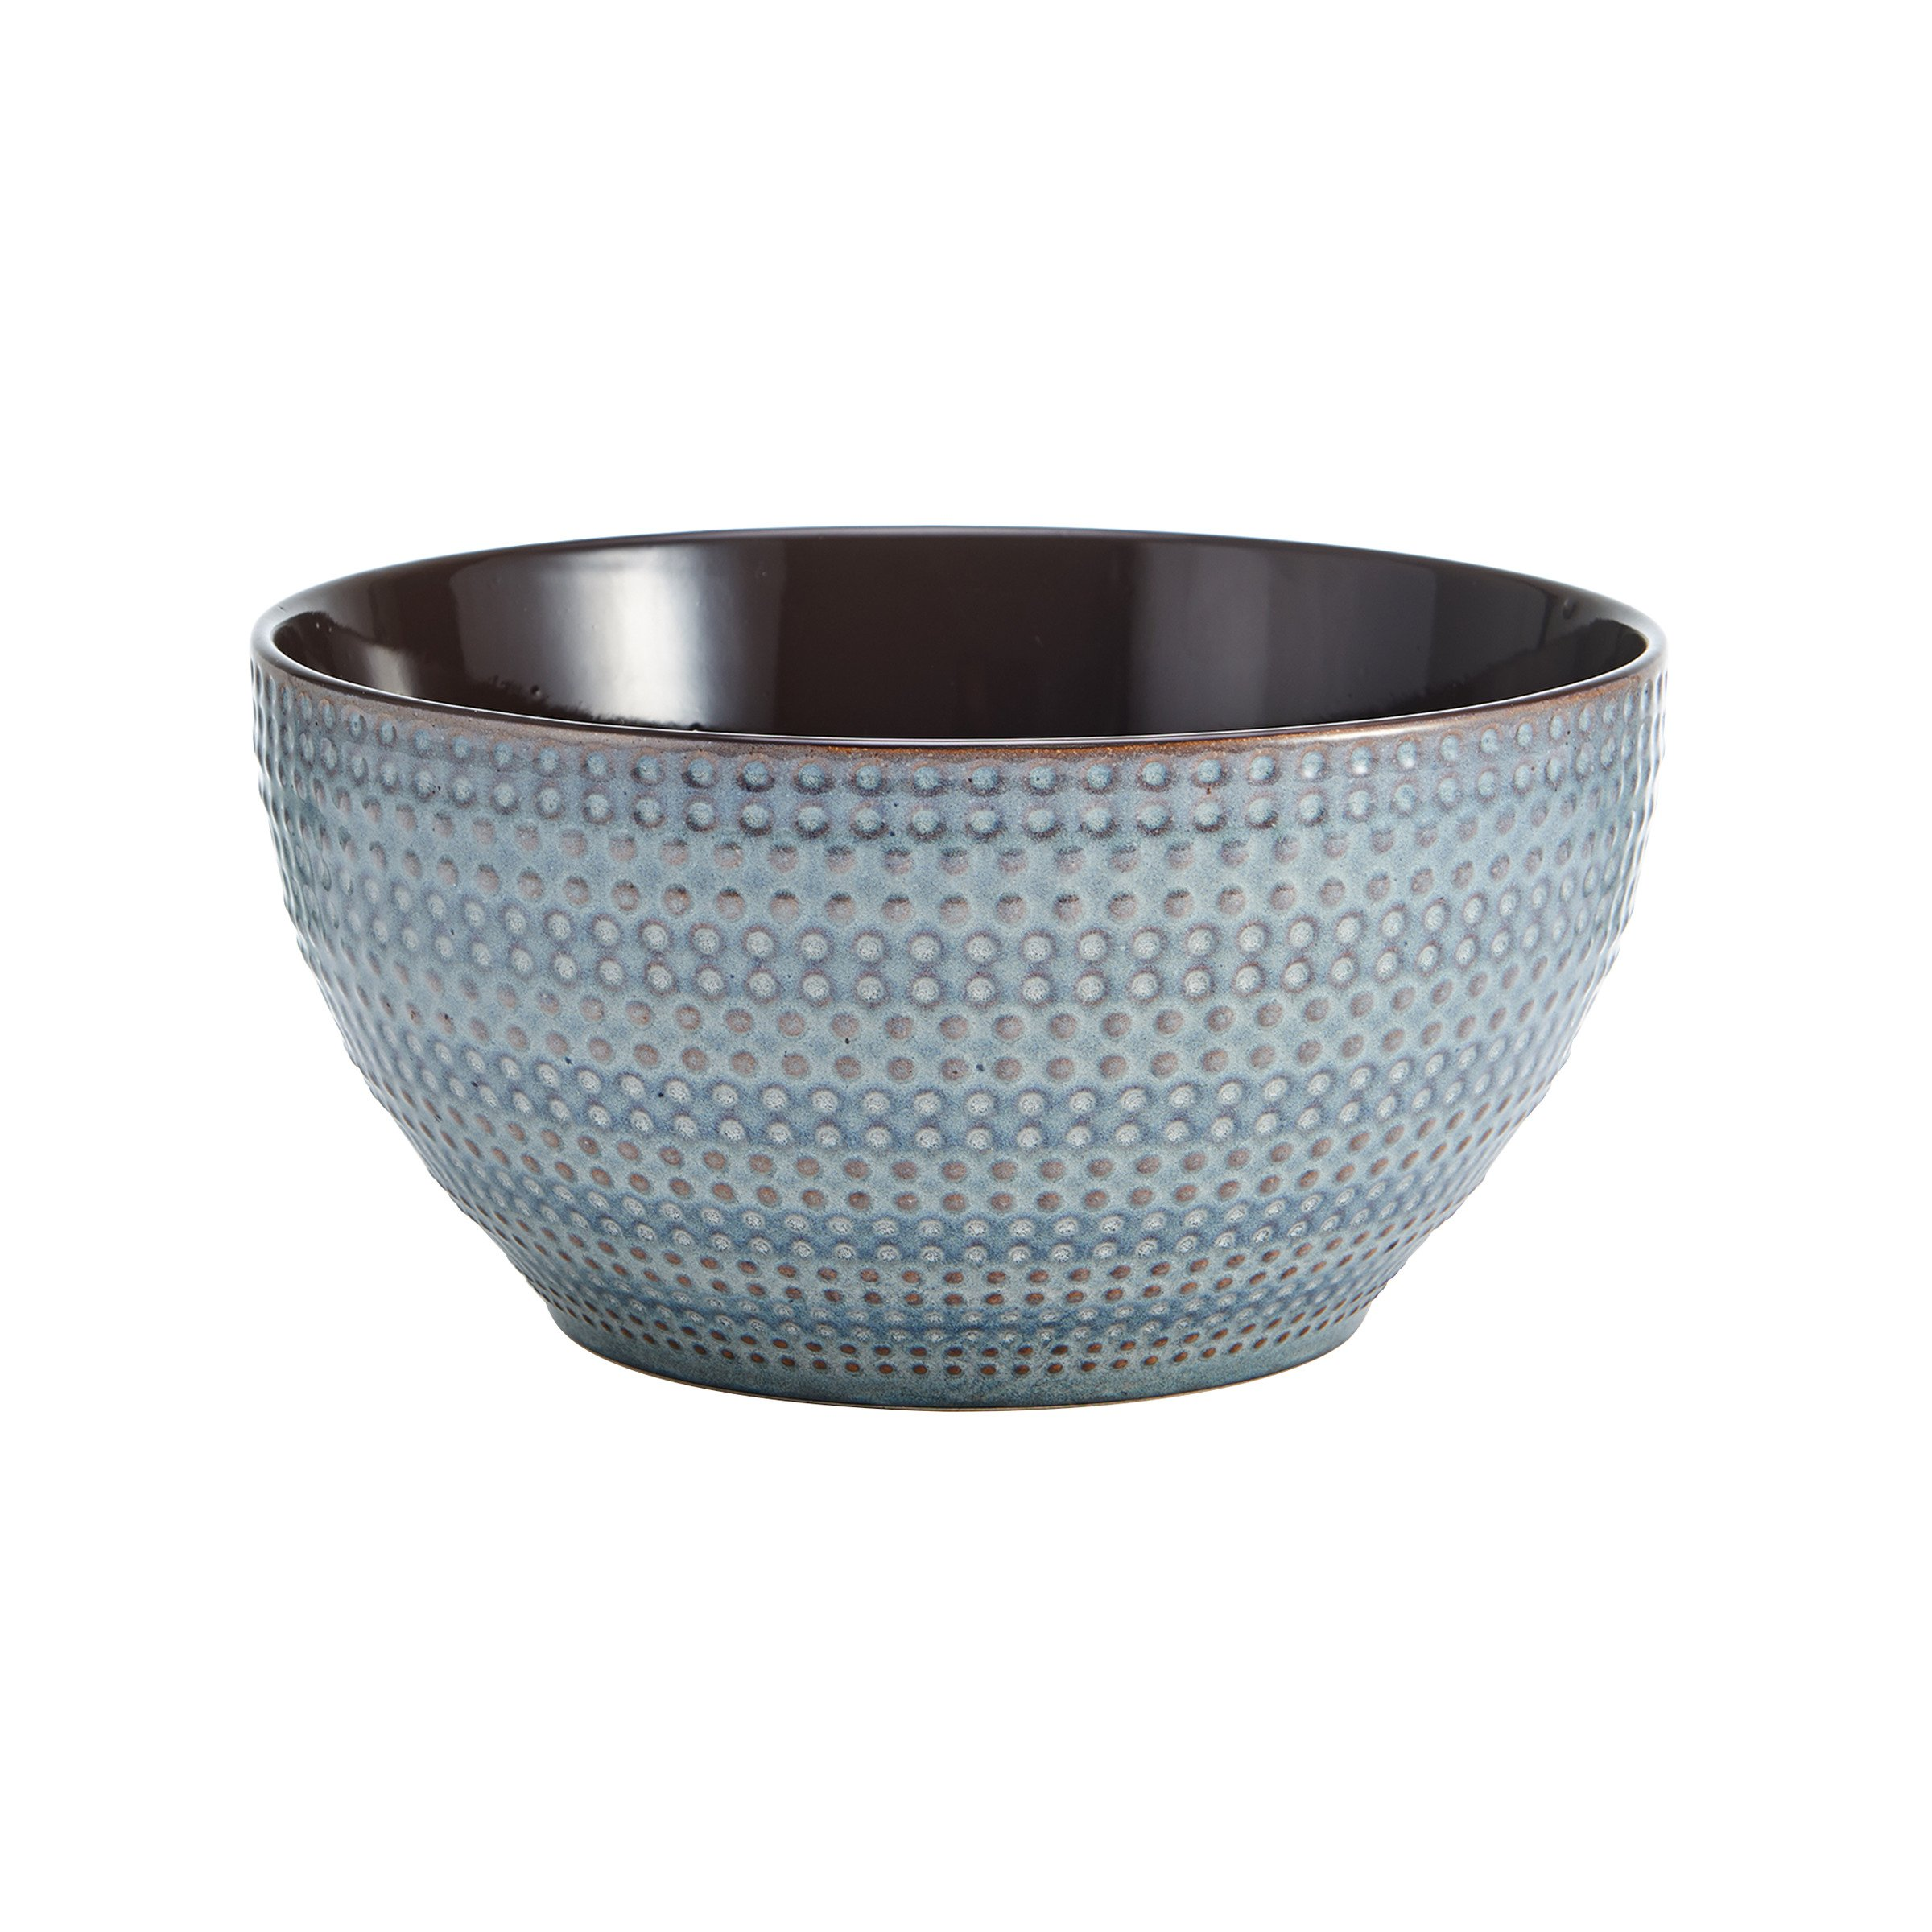 Pfaltzgraff 5187705 Bria Vegetable Bowl, 9'', Blue